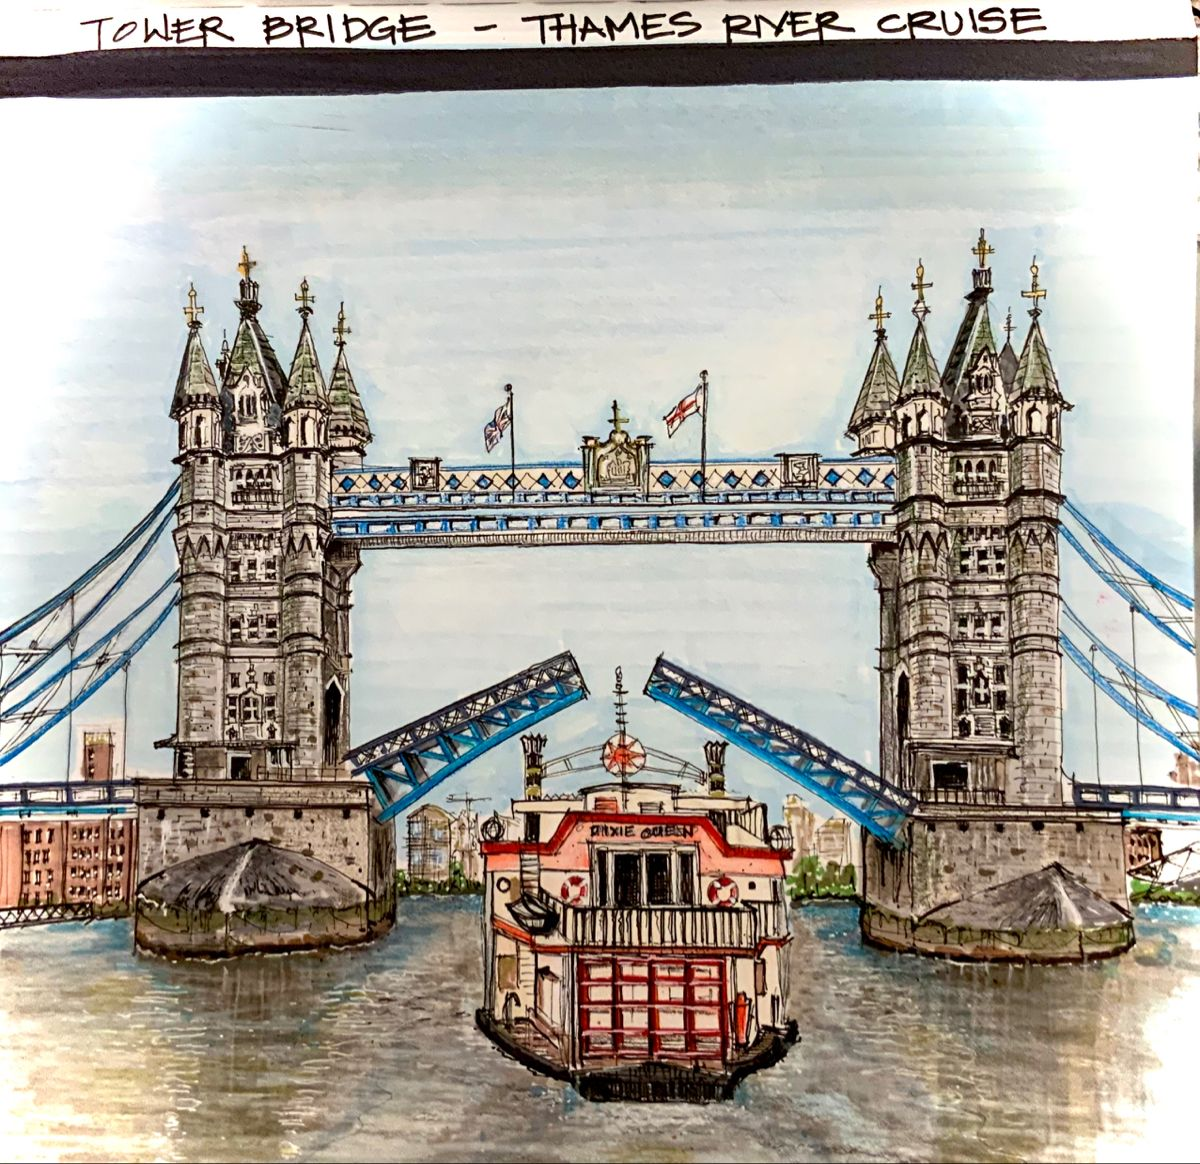 Rendering by Claire #towerbridge #sketch #markers #rendering #archisketch